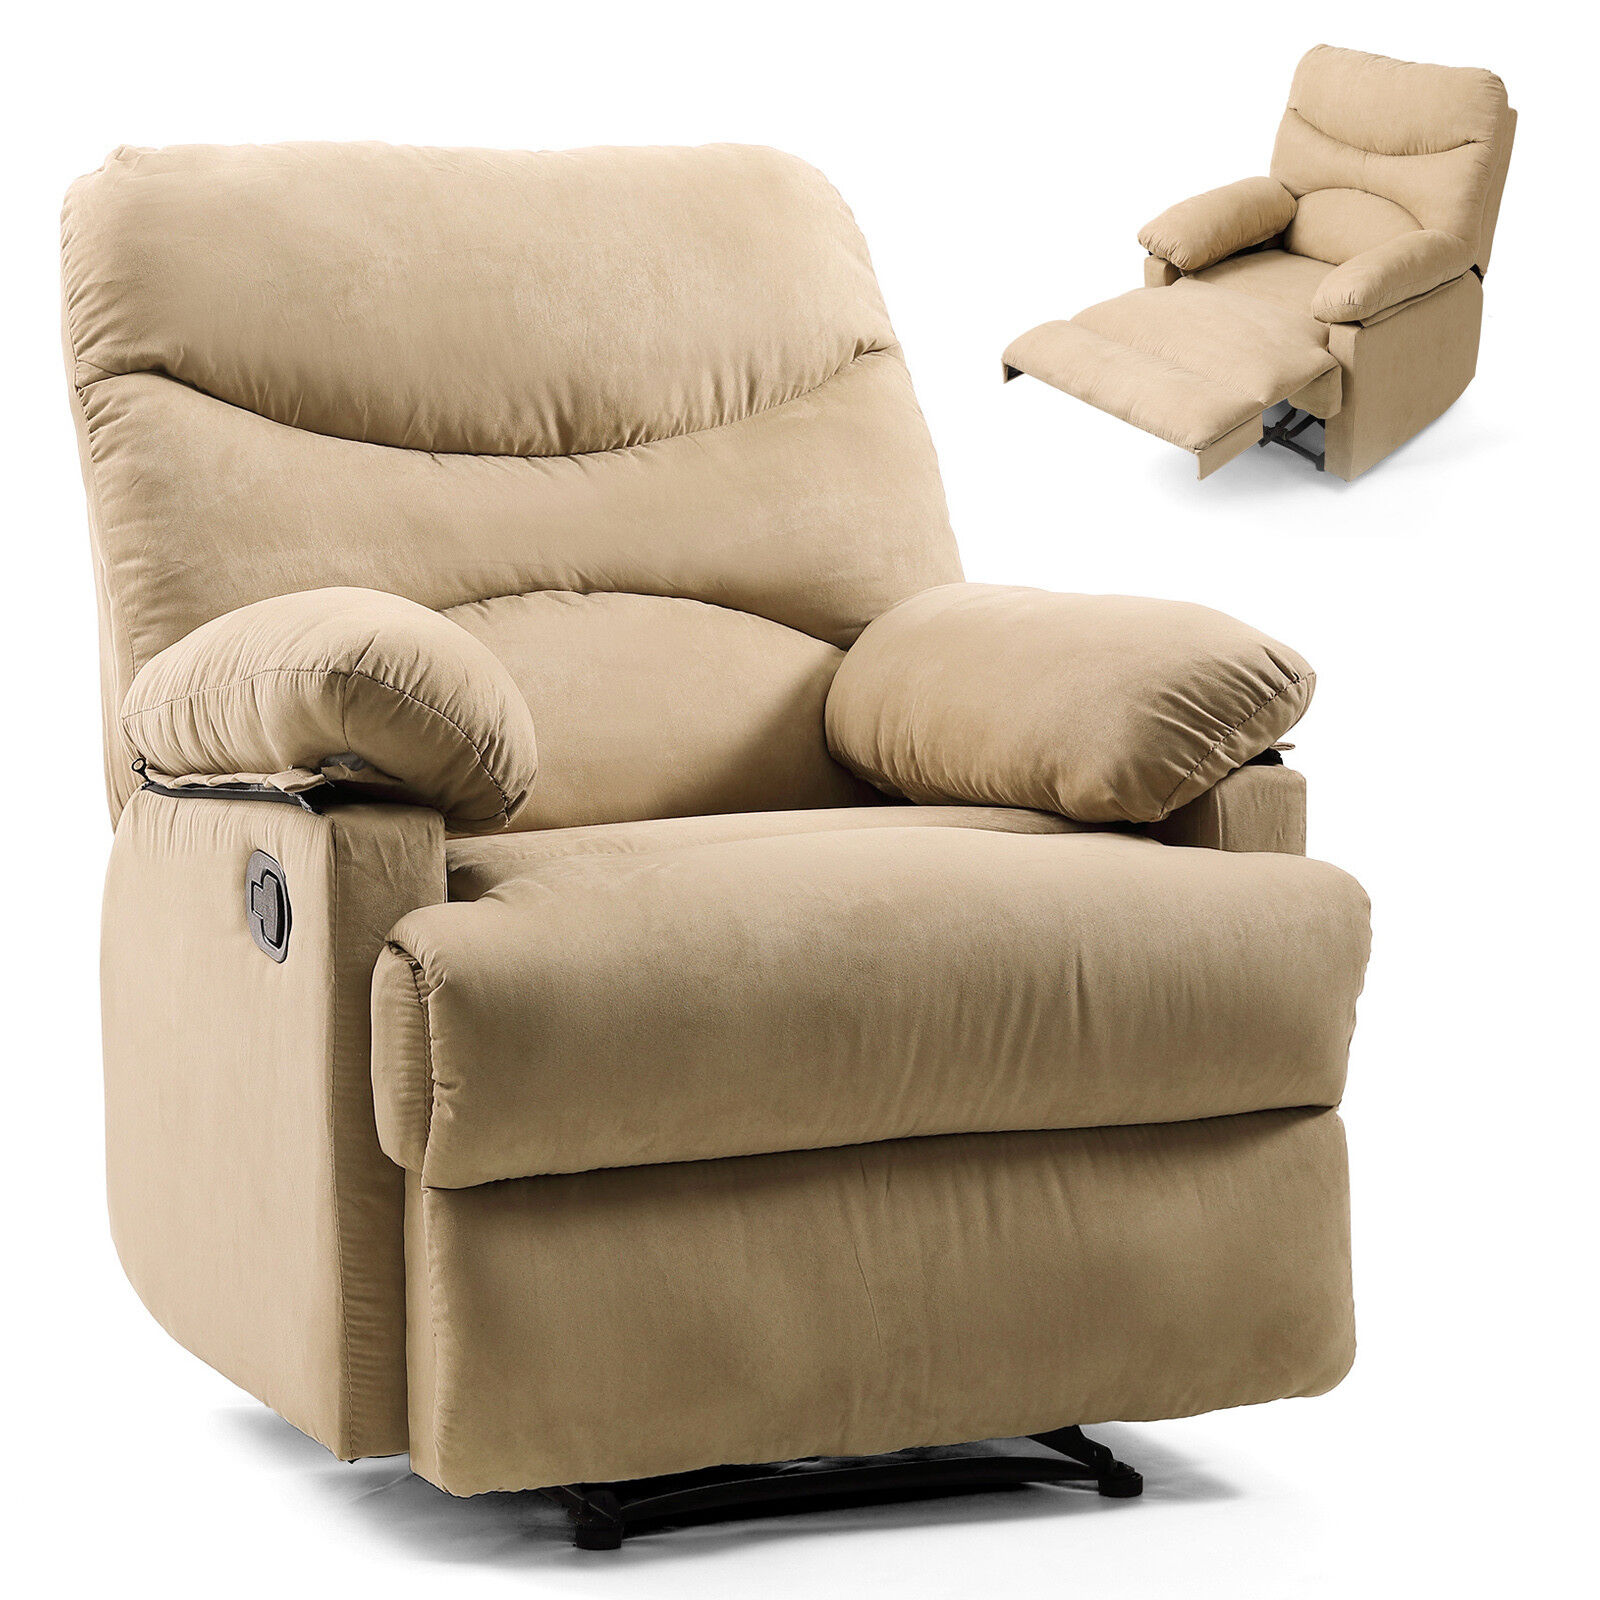 Lazy Style Massage Recliner Chair Zero Gravity Full Body Hea